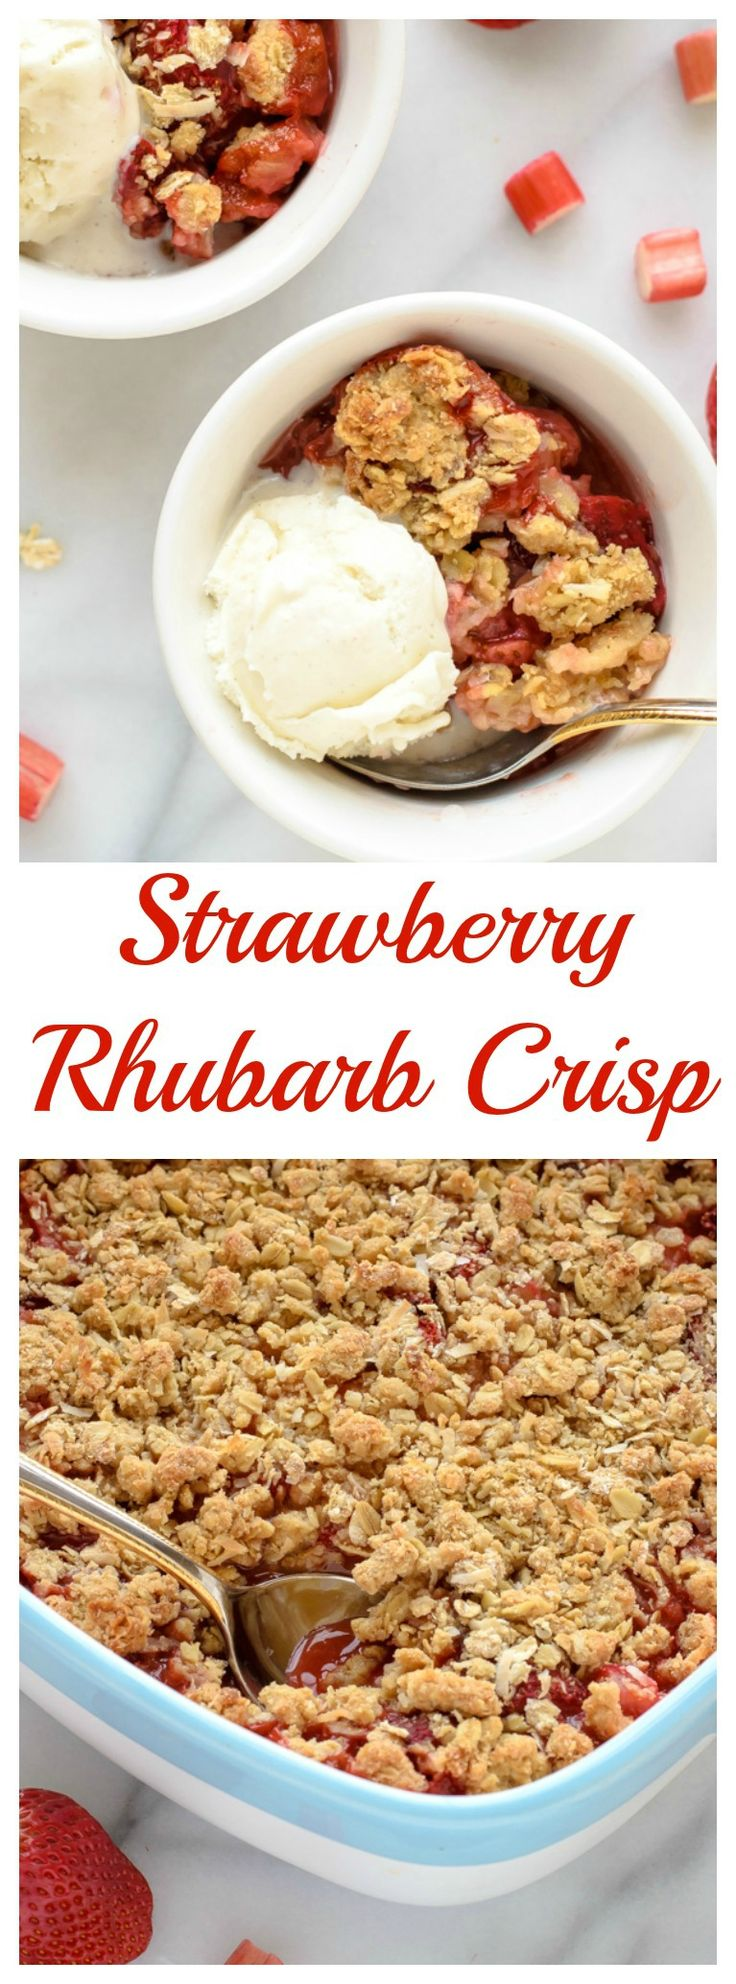 The best way to celebrate summer! Healthy Strawberry Rhubarb Crisp with Oatmeal Cookie Topping.